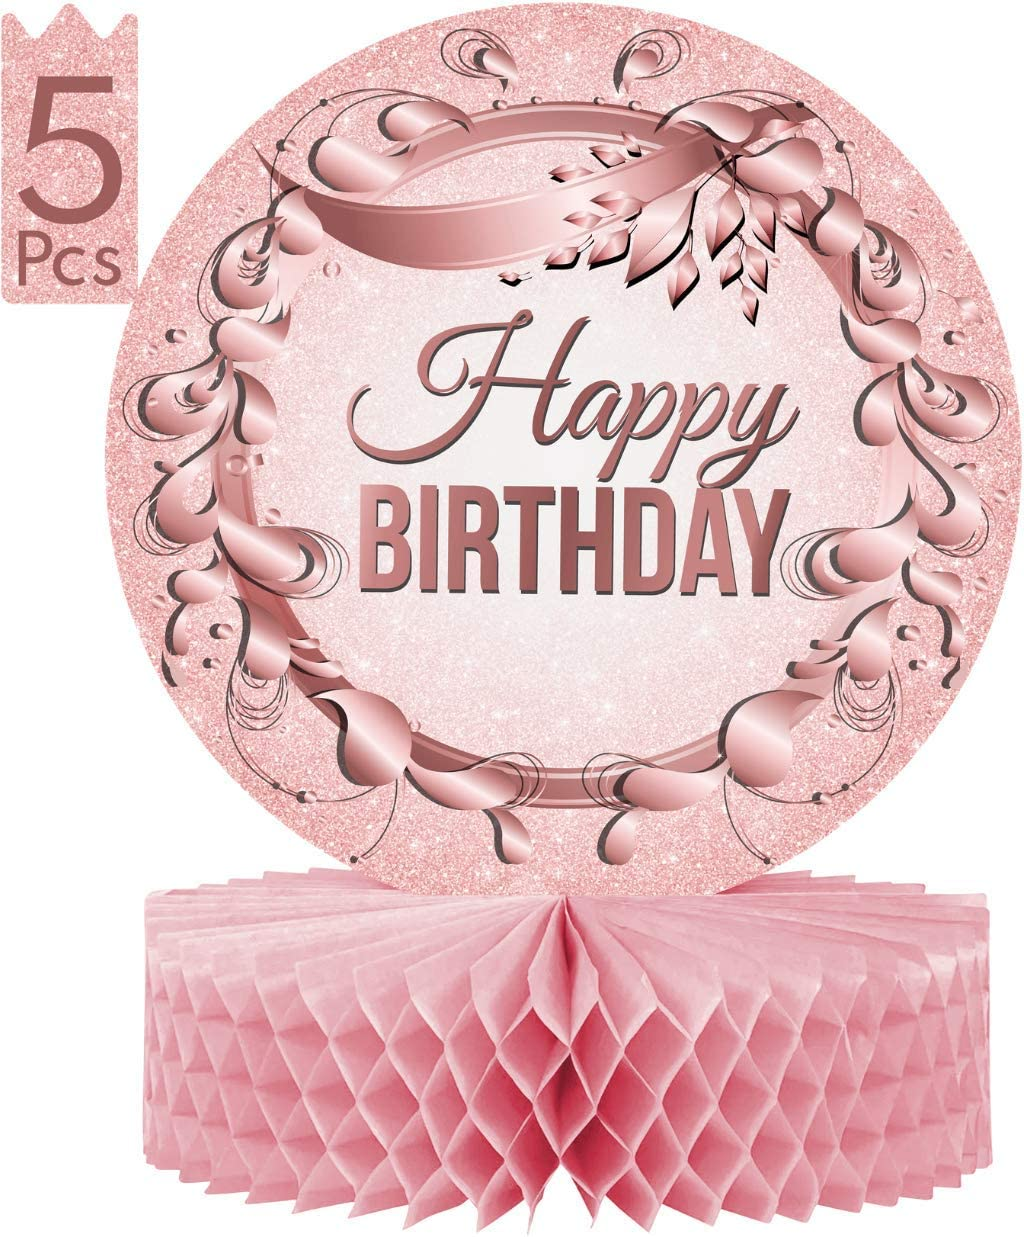 """Birthday Table Centerpiece Decorations -5-Pack Double Sided Cardstock & Tissue Paper Honeycomb Happy Birthday Decoration - 12"""" Pink & Rose Gold Birthday Party Decorations Centerpieces"""